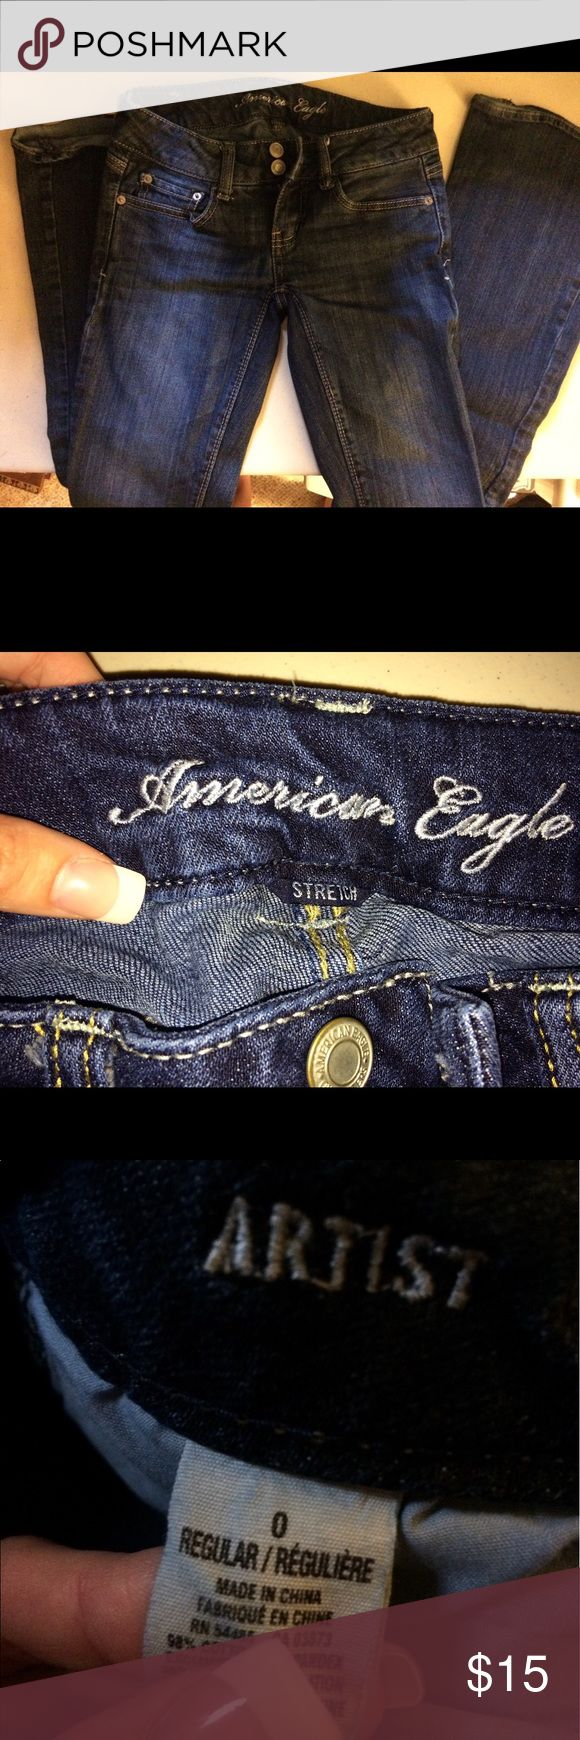 American eagle jeans Size 0 regular/stretch American eagle jeans American Eagle Outfitters Jeans